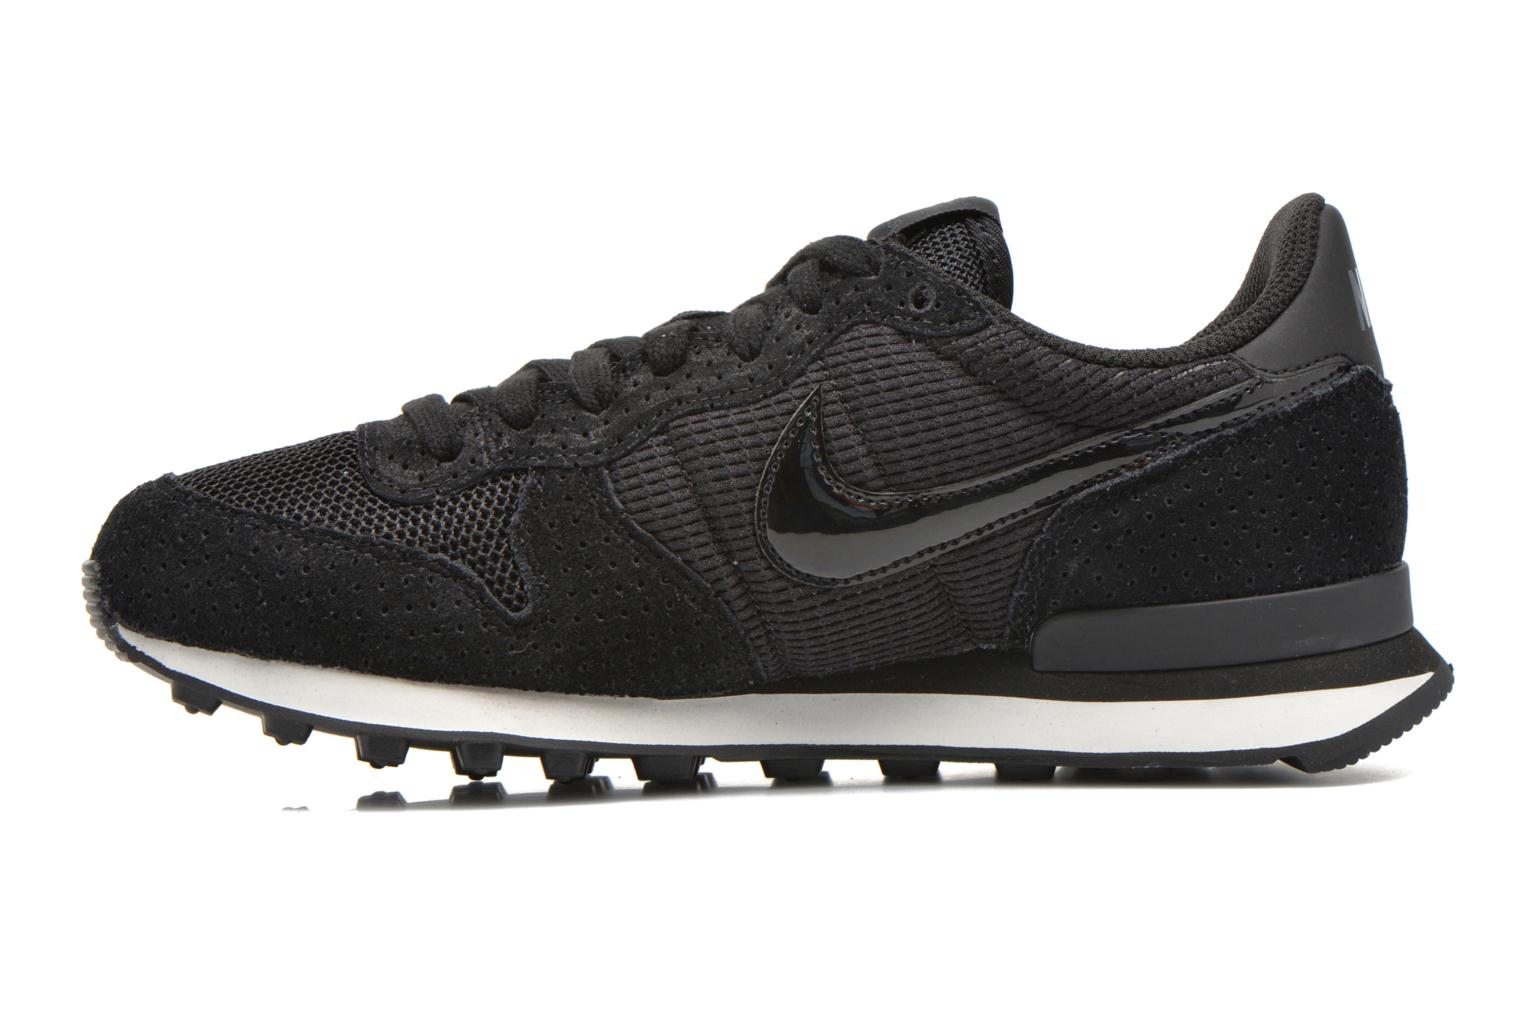 Wmns Internationalist Black/Black-Dark Grey-Smmt Wht